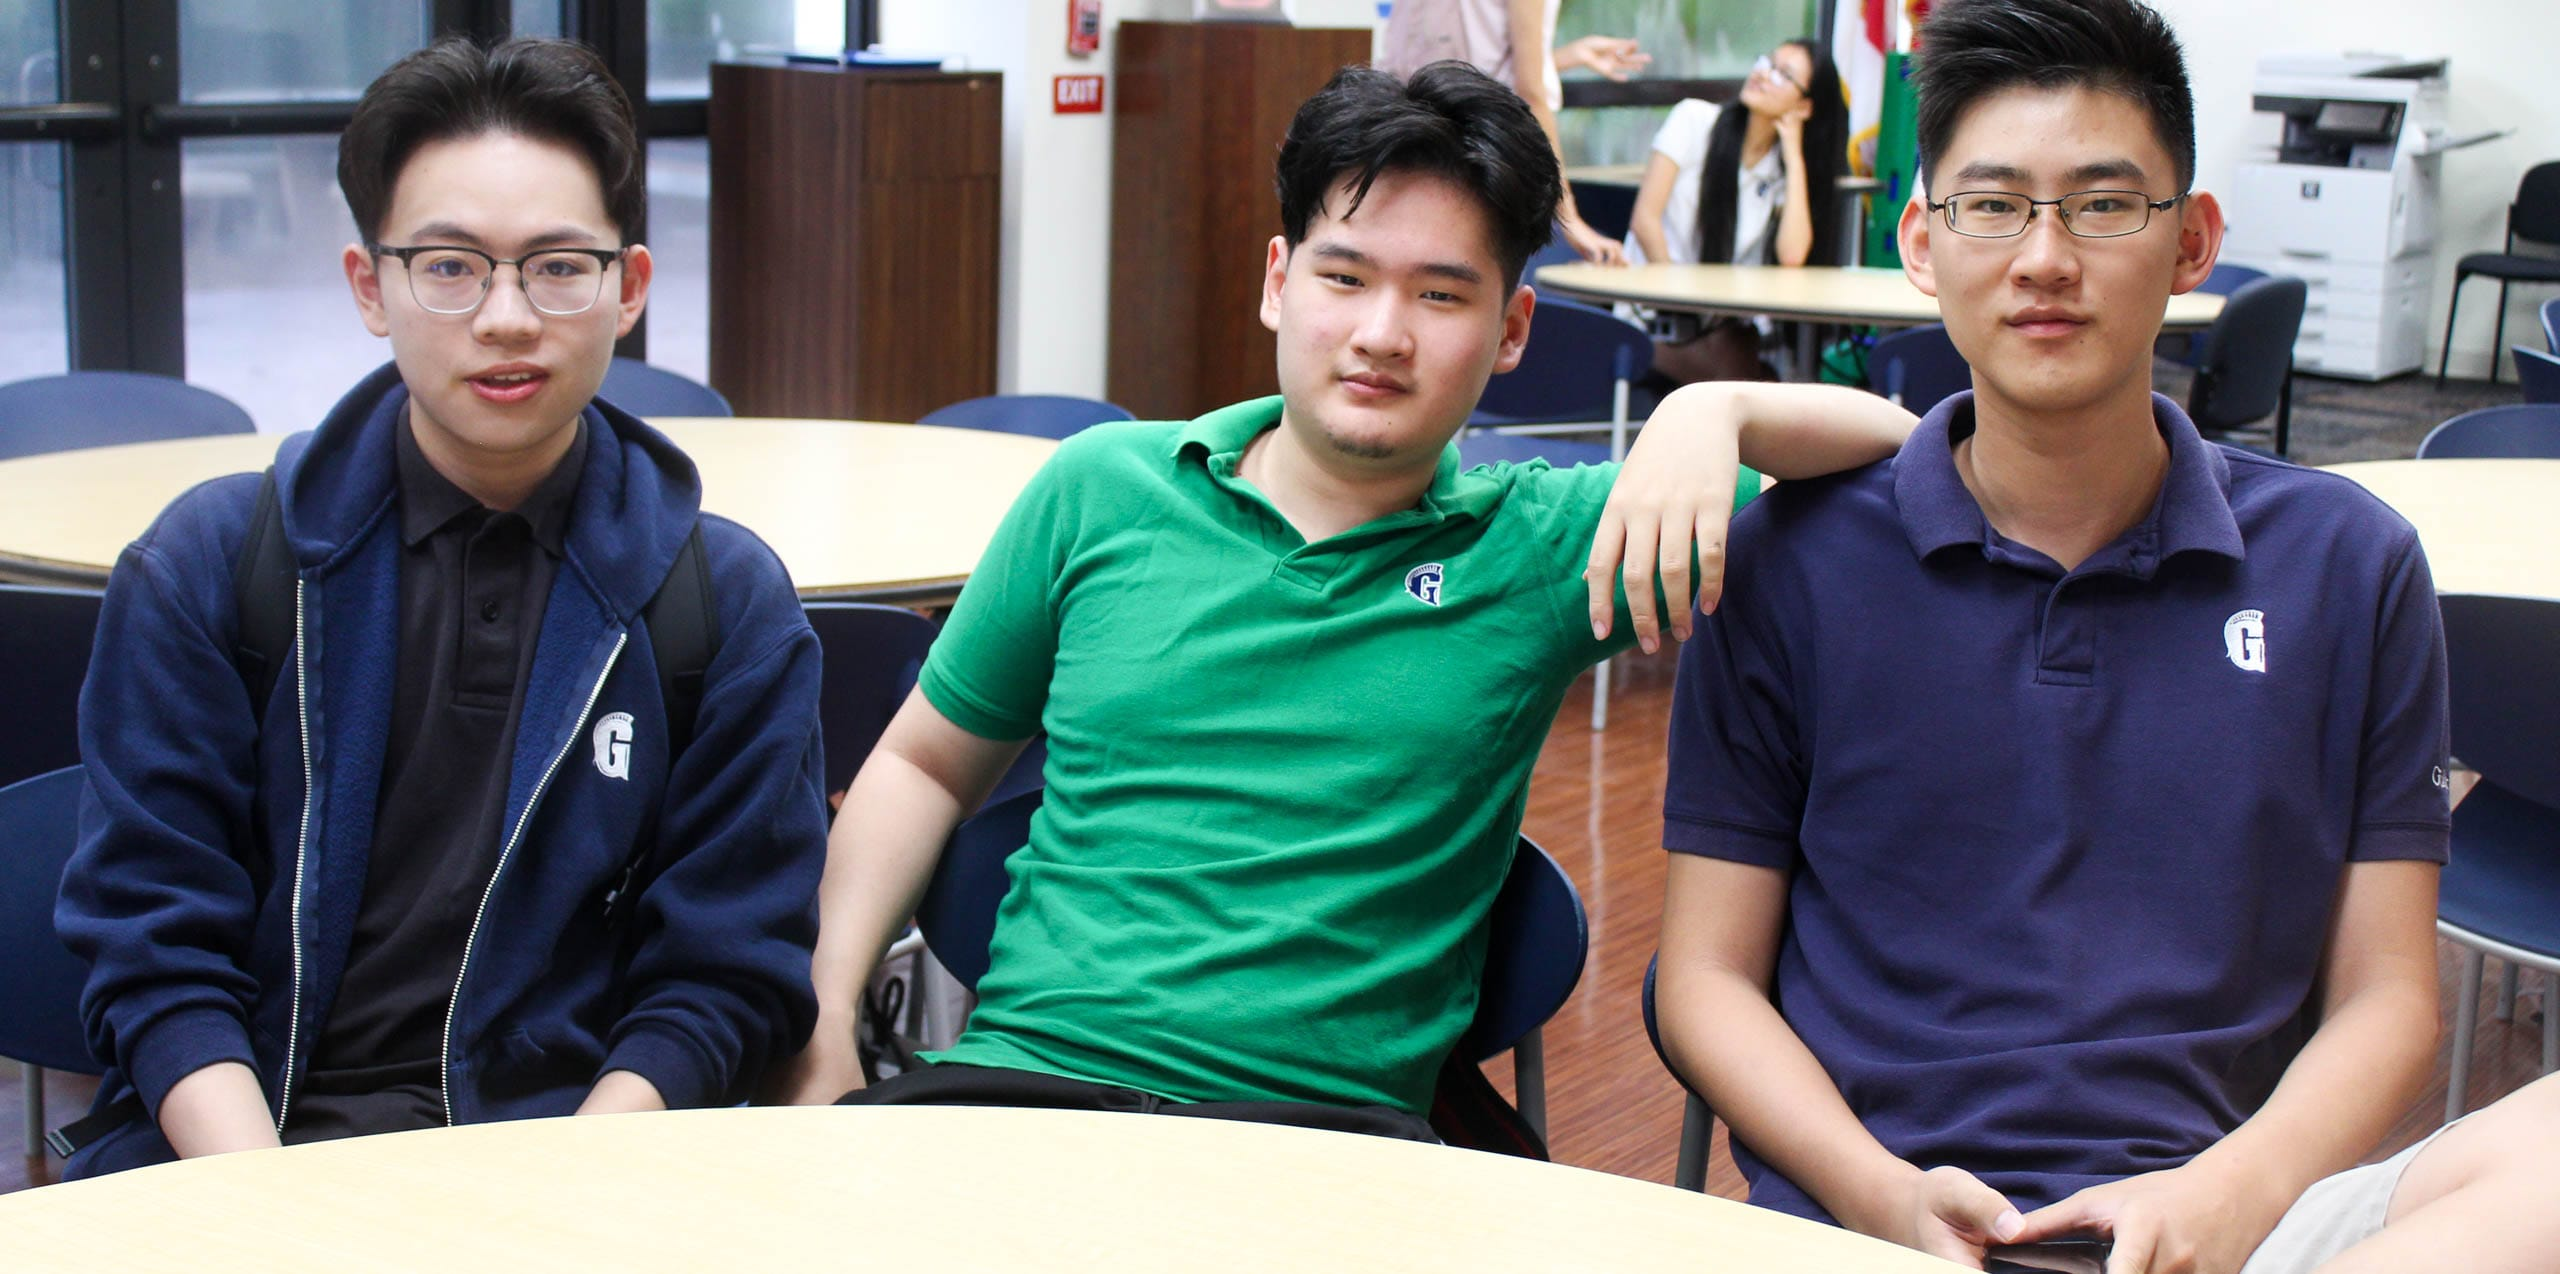 Three upper student males in English class